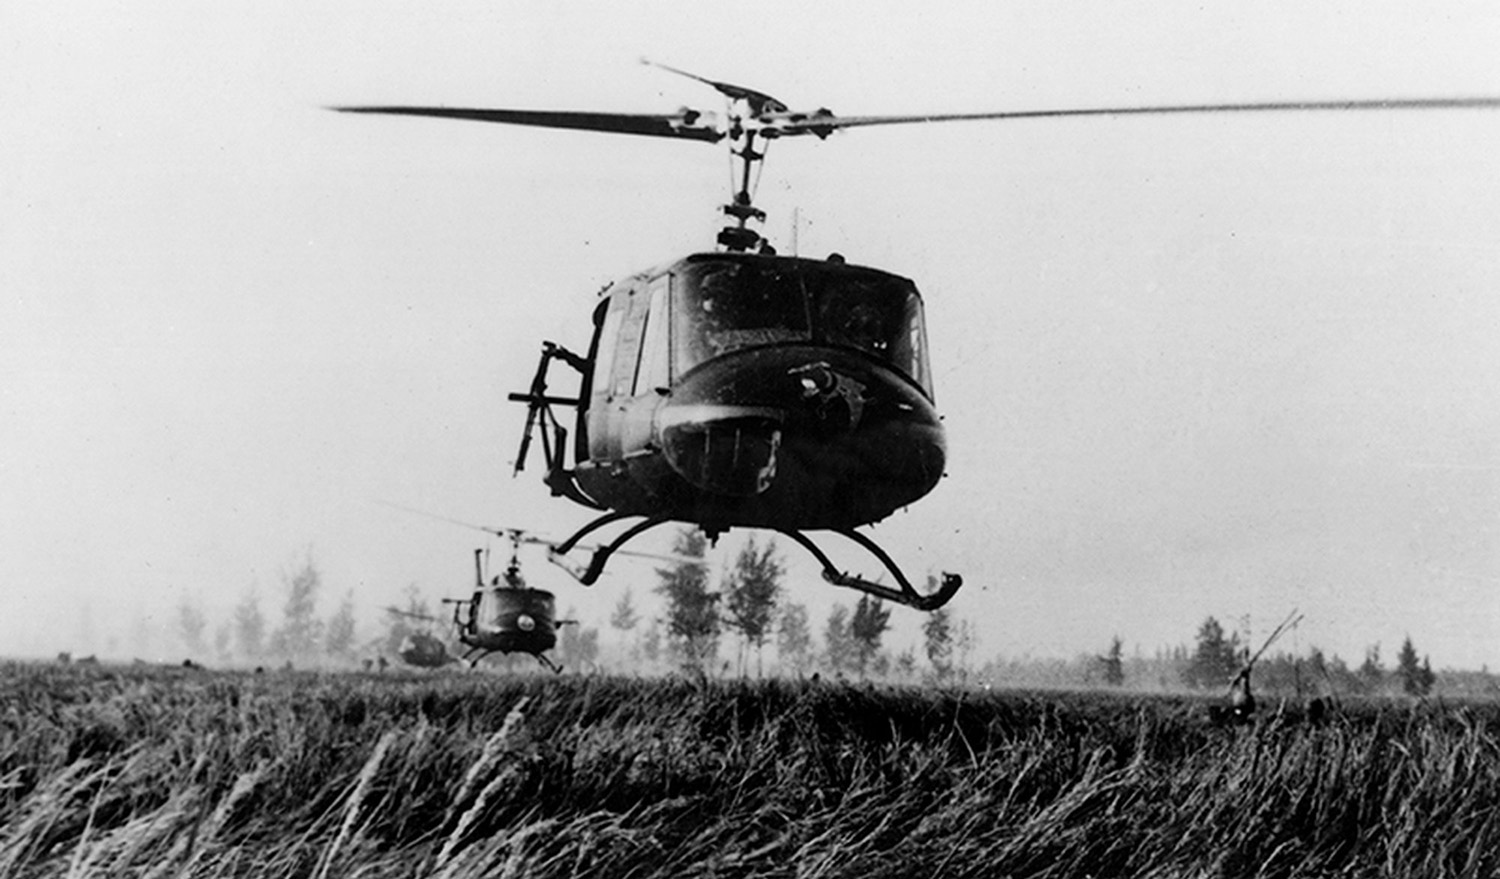 choppers_land_at_my_lai_01.jpg